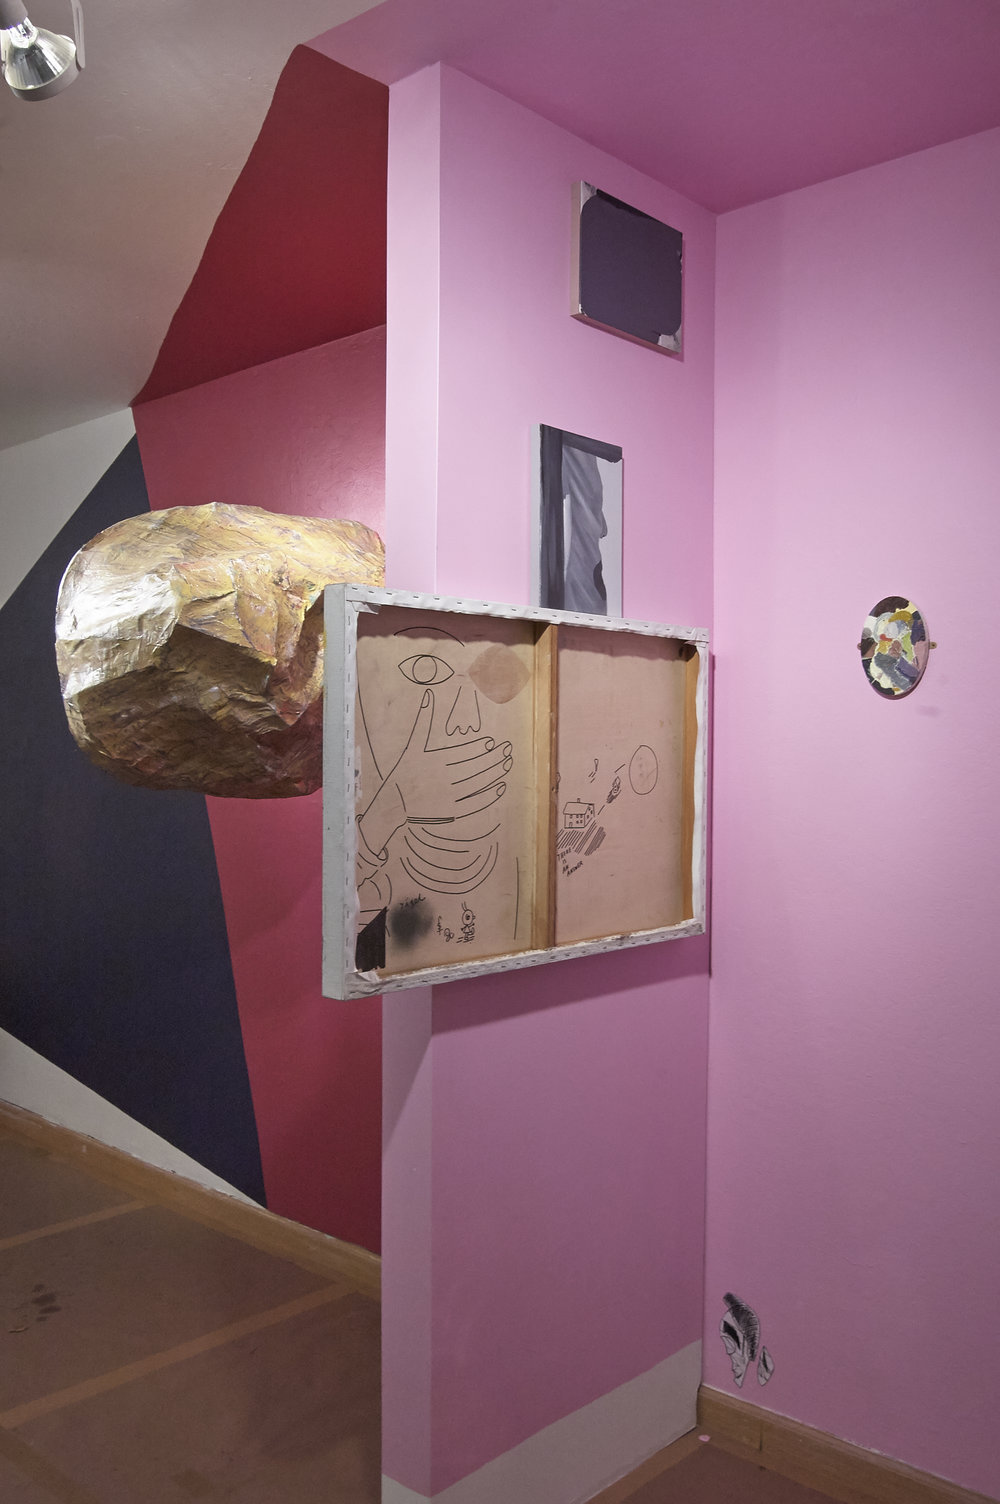 Experts in Strangers' Dreams, installation view